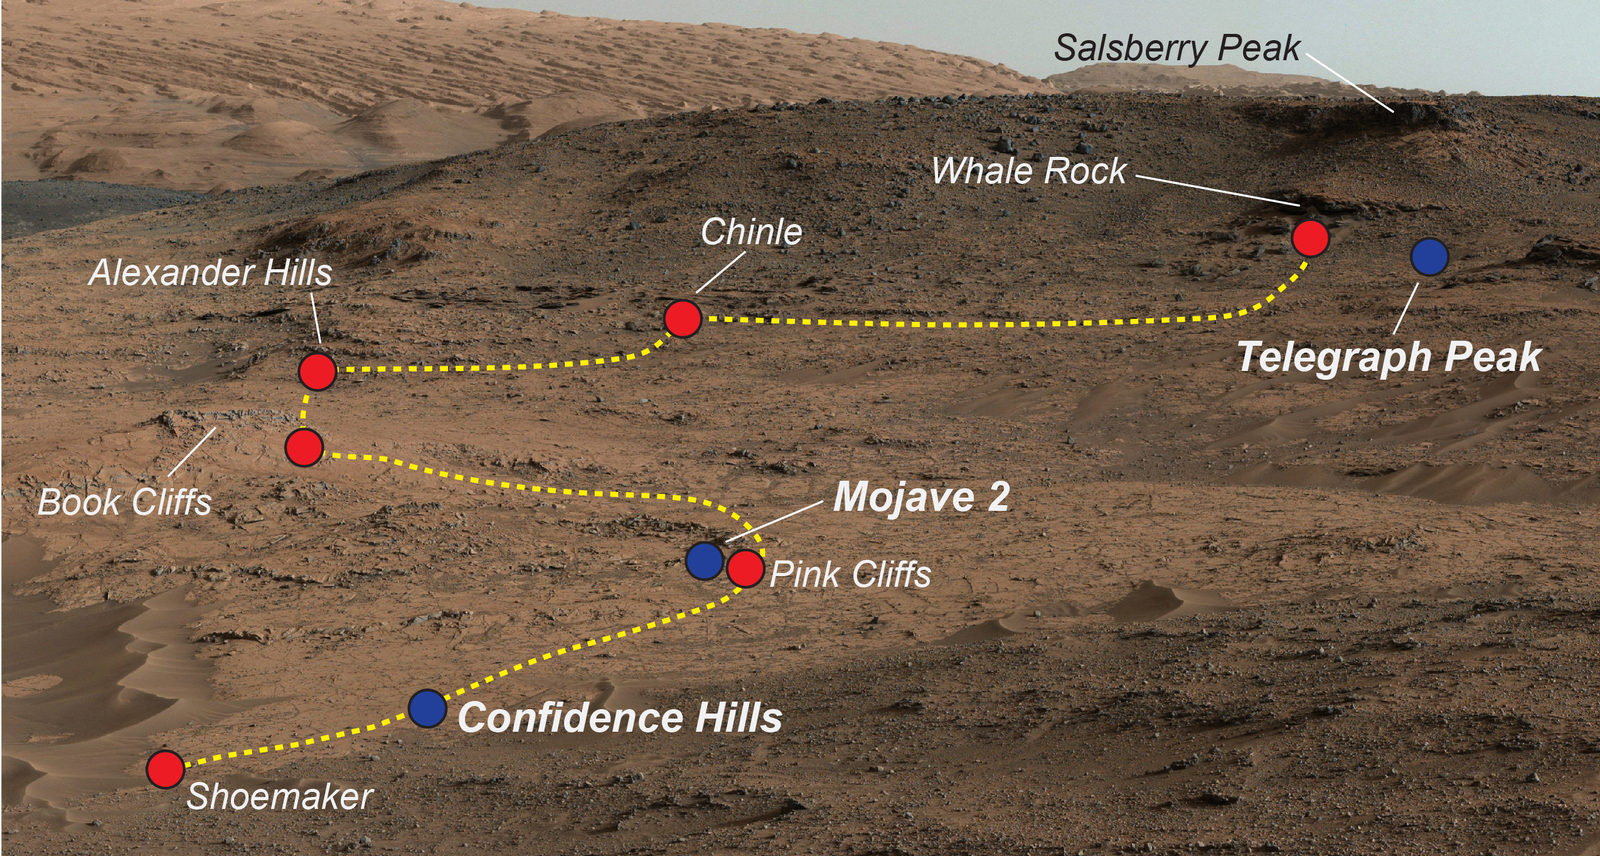 "NASA's Curiosity Mars rover examined a mudstone outcrop area called ""Pahrump Hills"" on lower Mount Sharp, in 2014 and 2015.  This view shows locations of some targets the rover studied there. The blue dots indicate where drilled samples of powdered rock were collected for analysis."